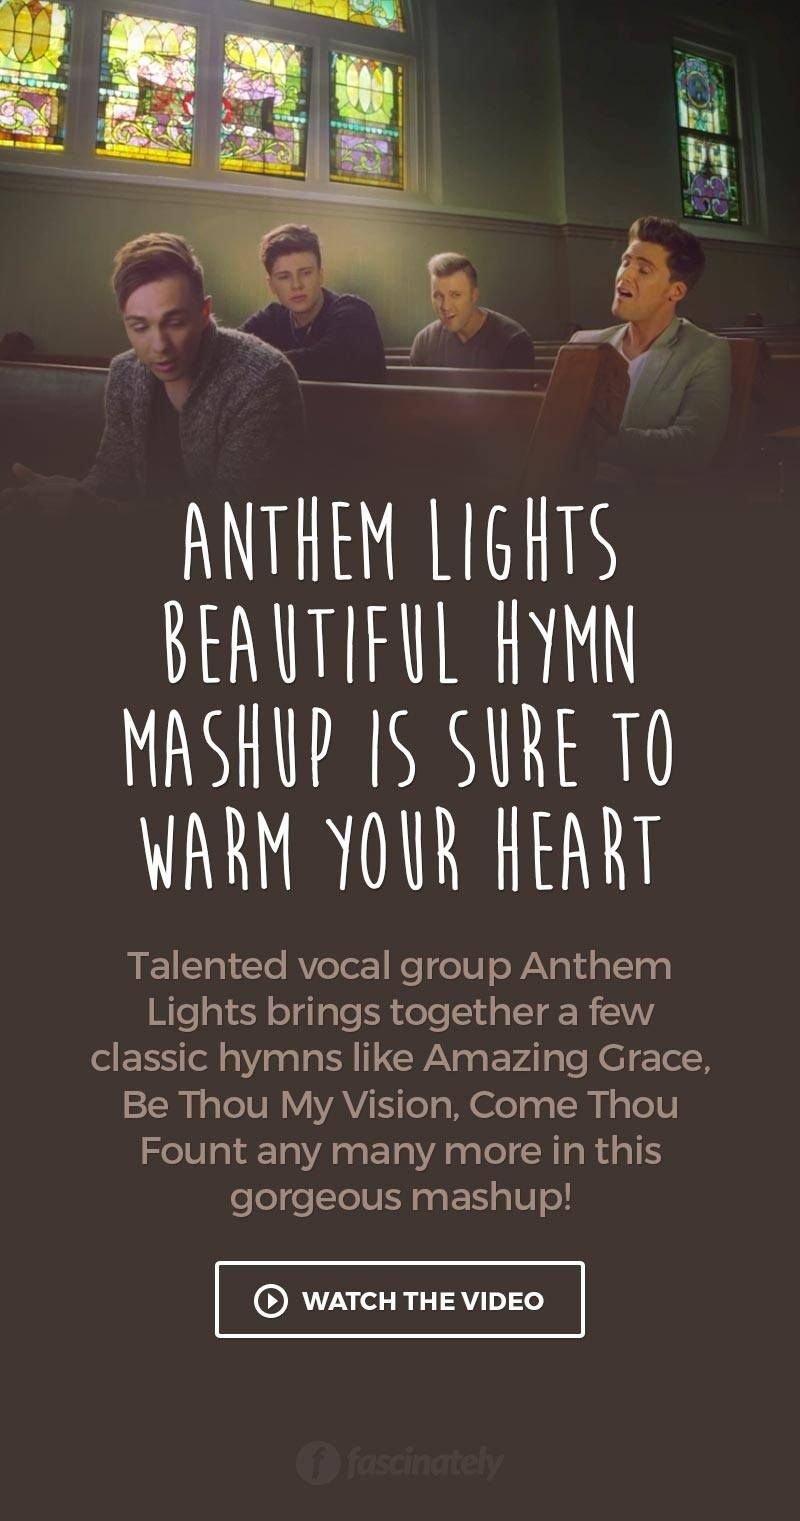 Anthem Lights Beautiful Hymn Mashup Is Sure To Warm Your Heart